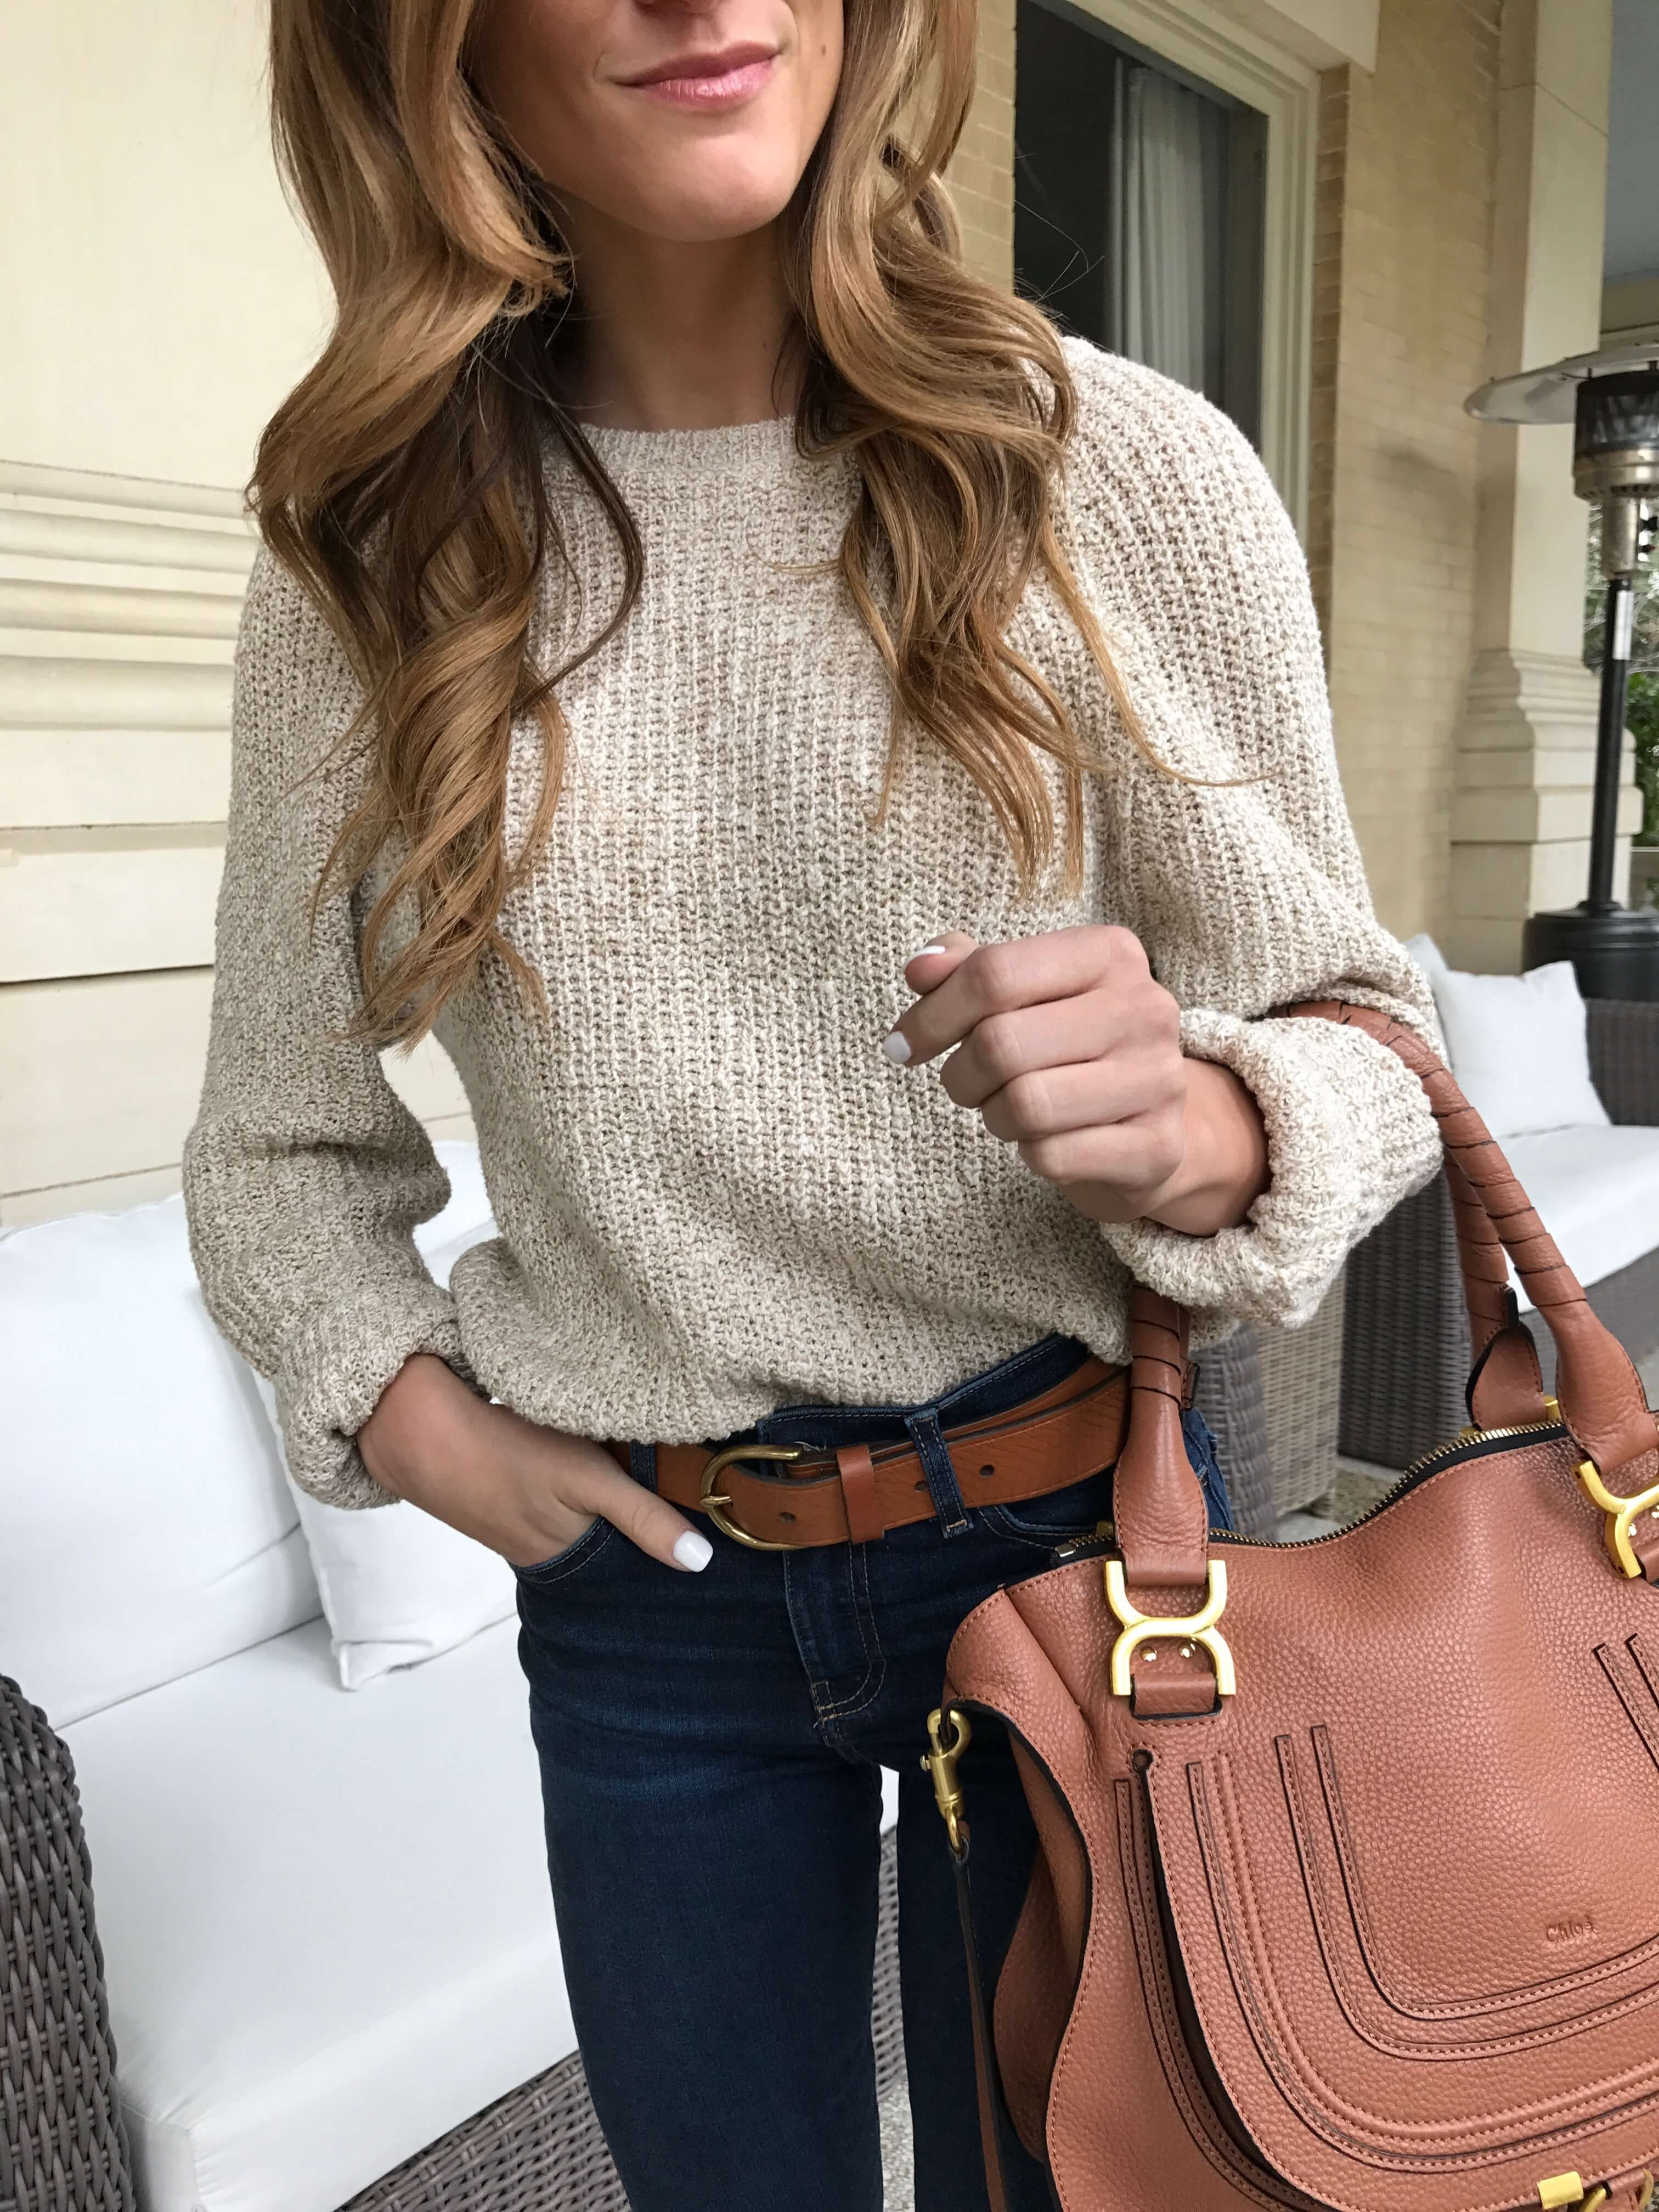 free people sweater 33% off, neutral sweater with cognac leather belt